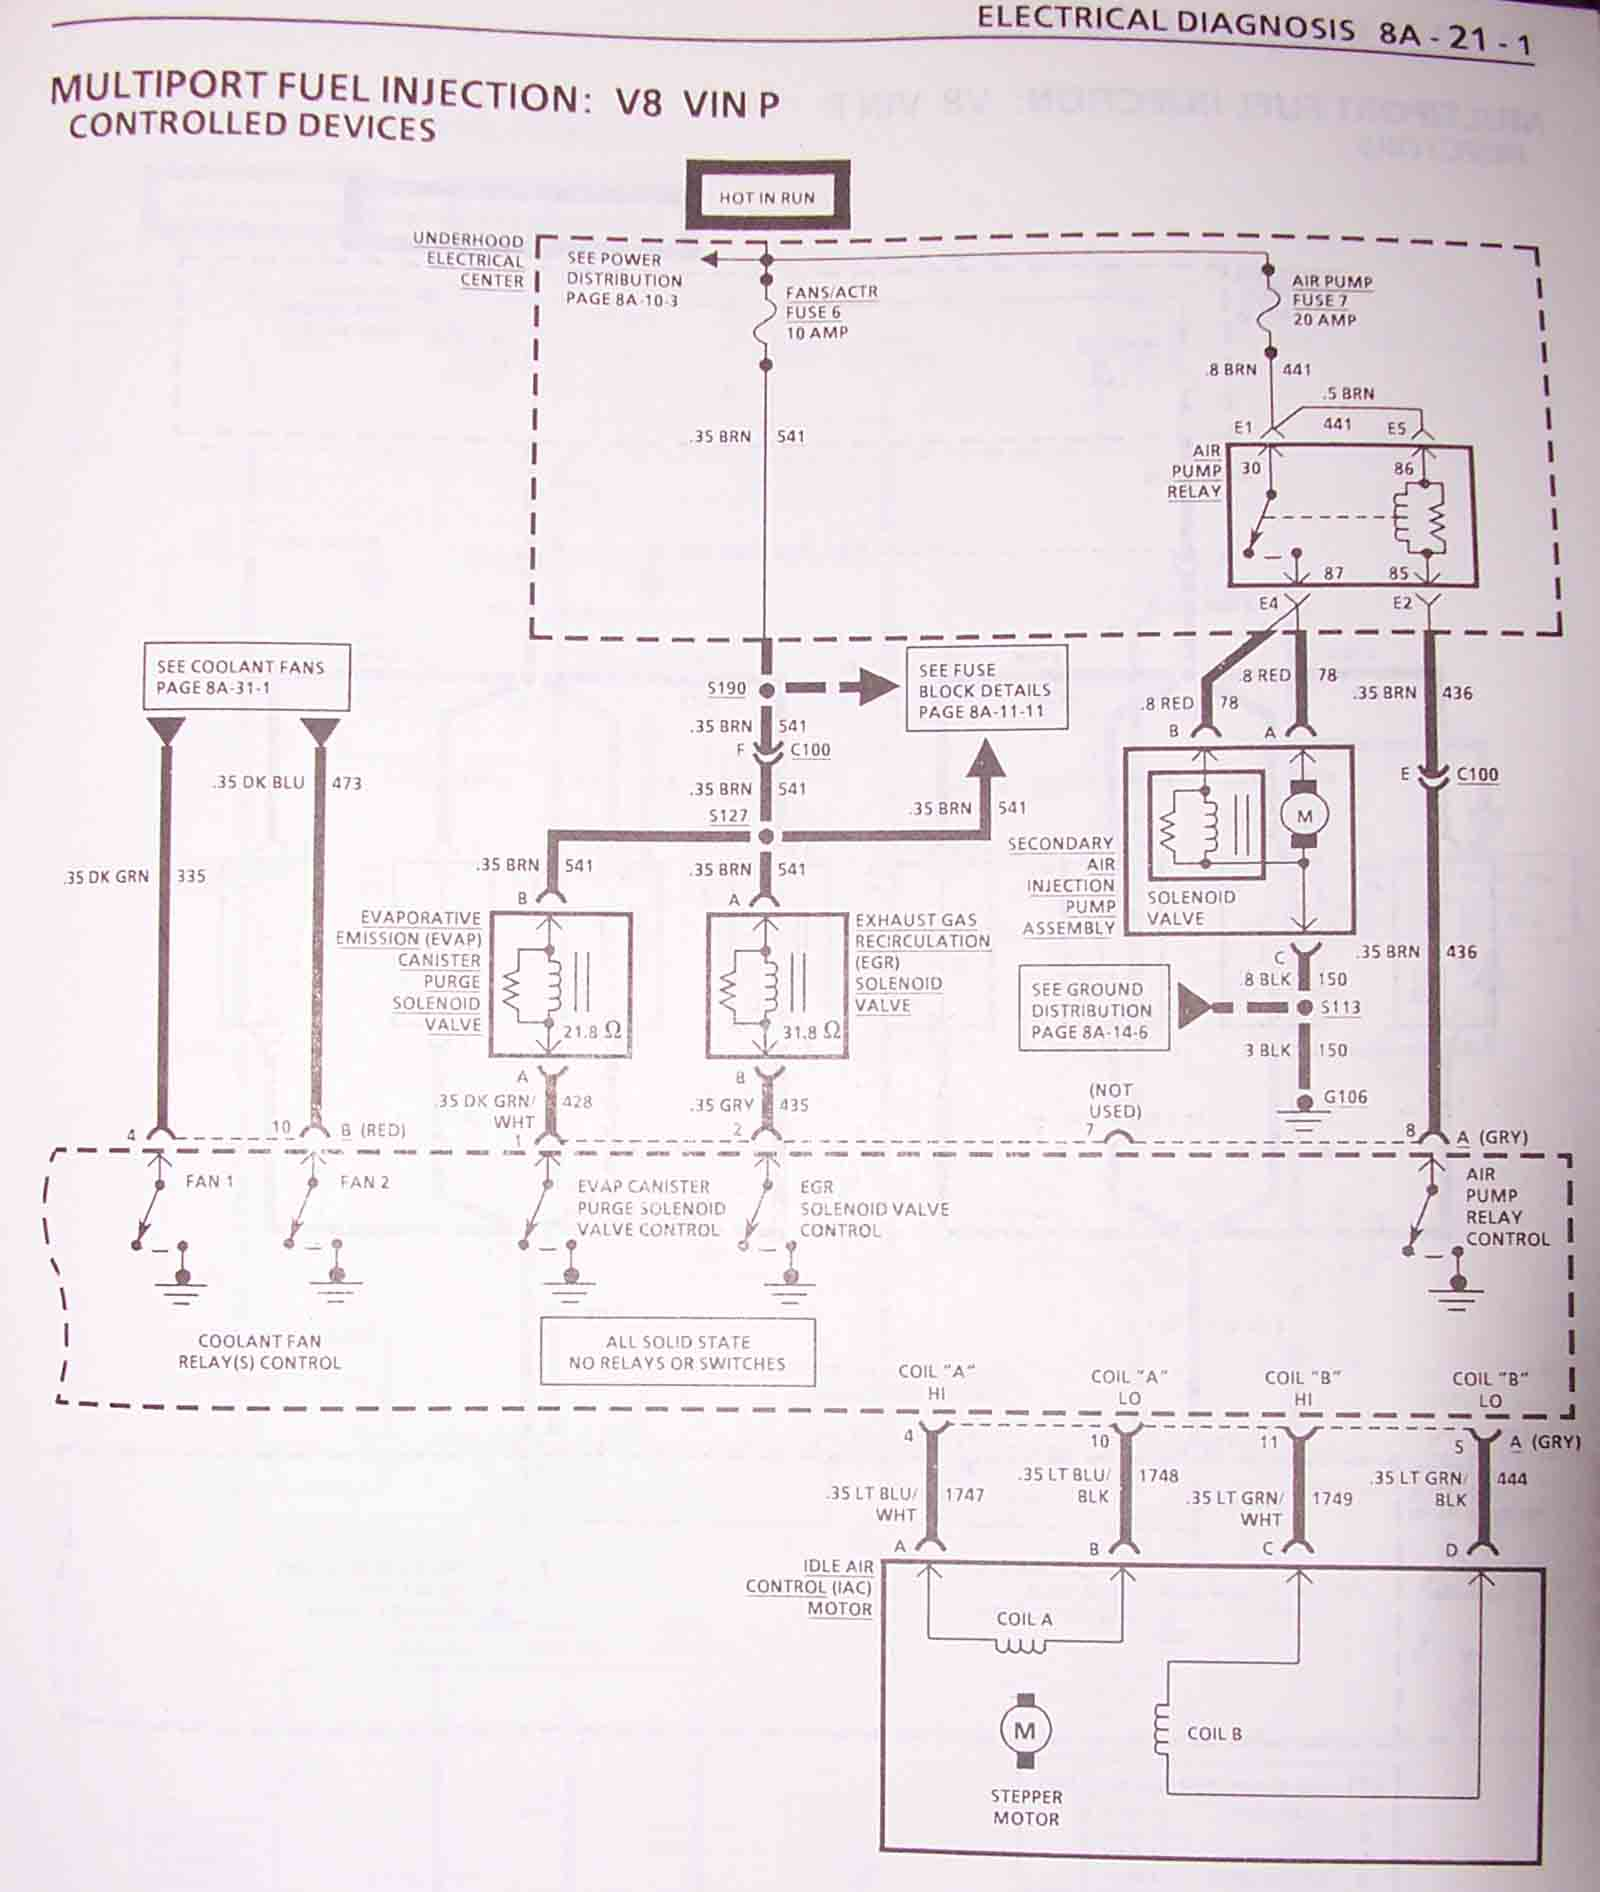 1995 Lt1 Wiring Harness Manual Guide Diagram 68 Camaro Fuse 93 Get Free Image About 1968 1996